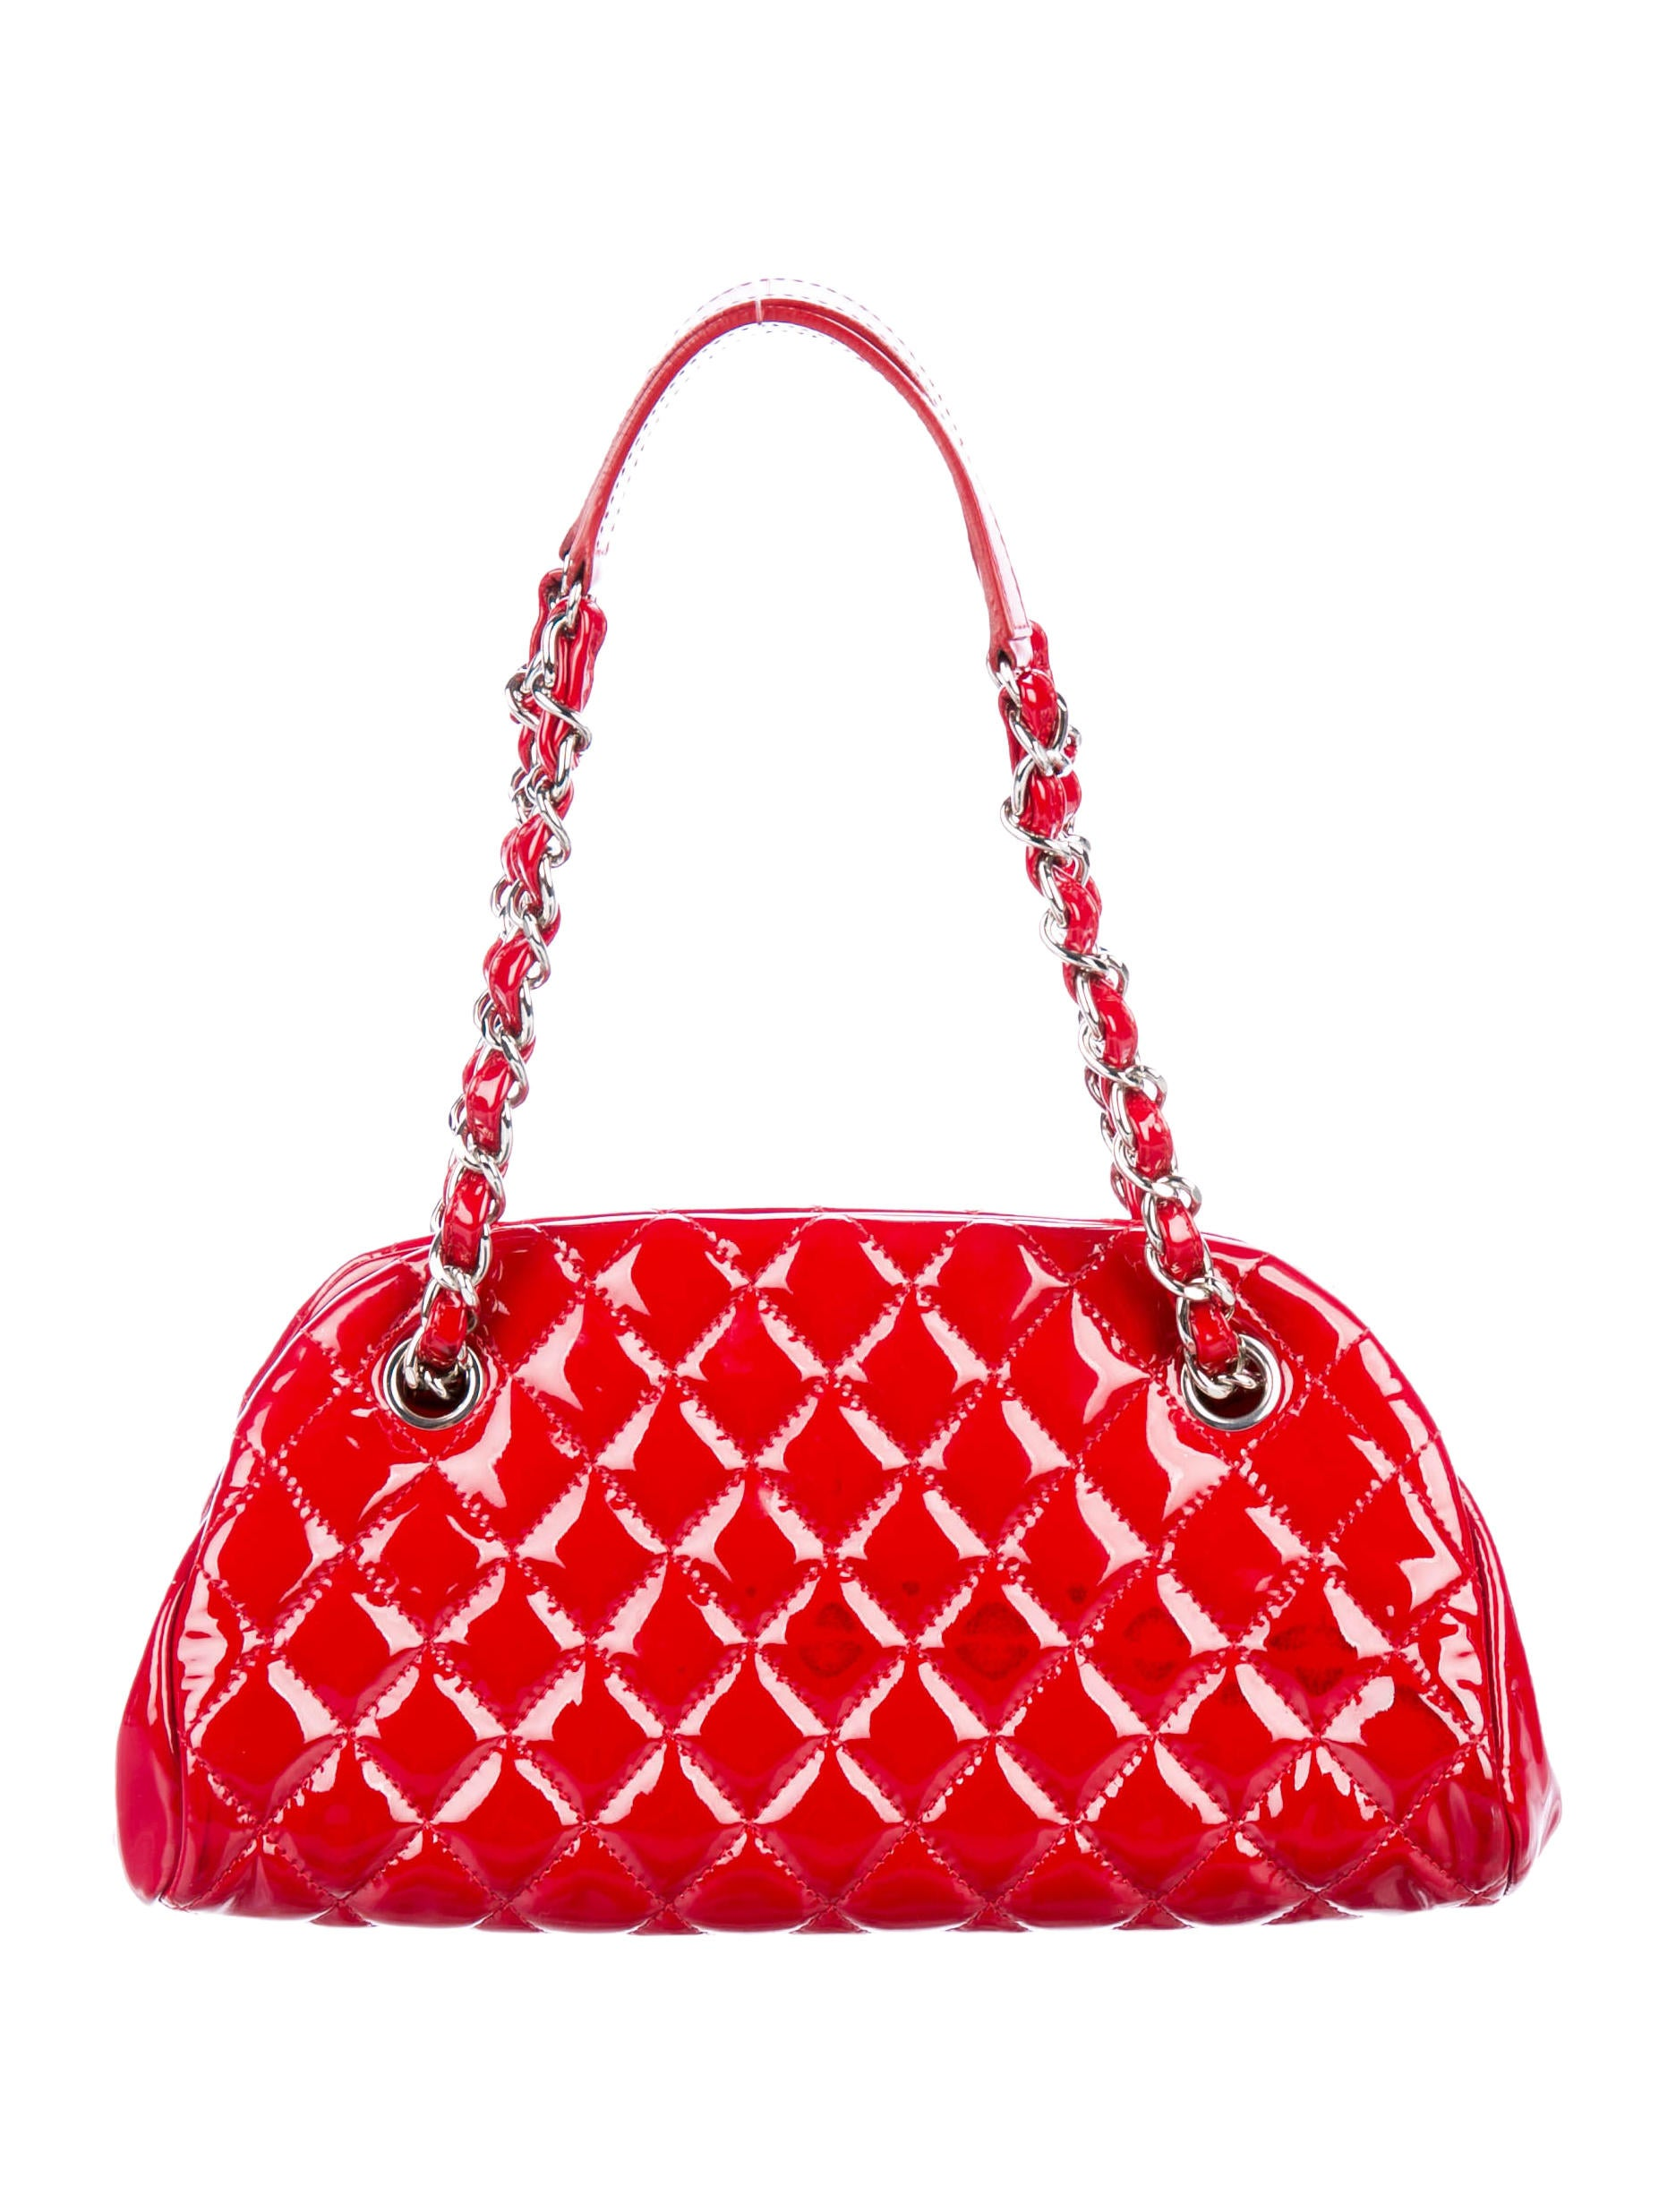 Just Mademoie Small Bowler Bag